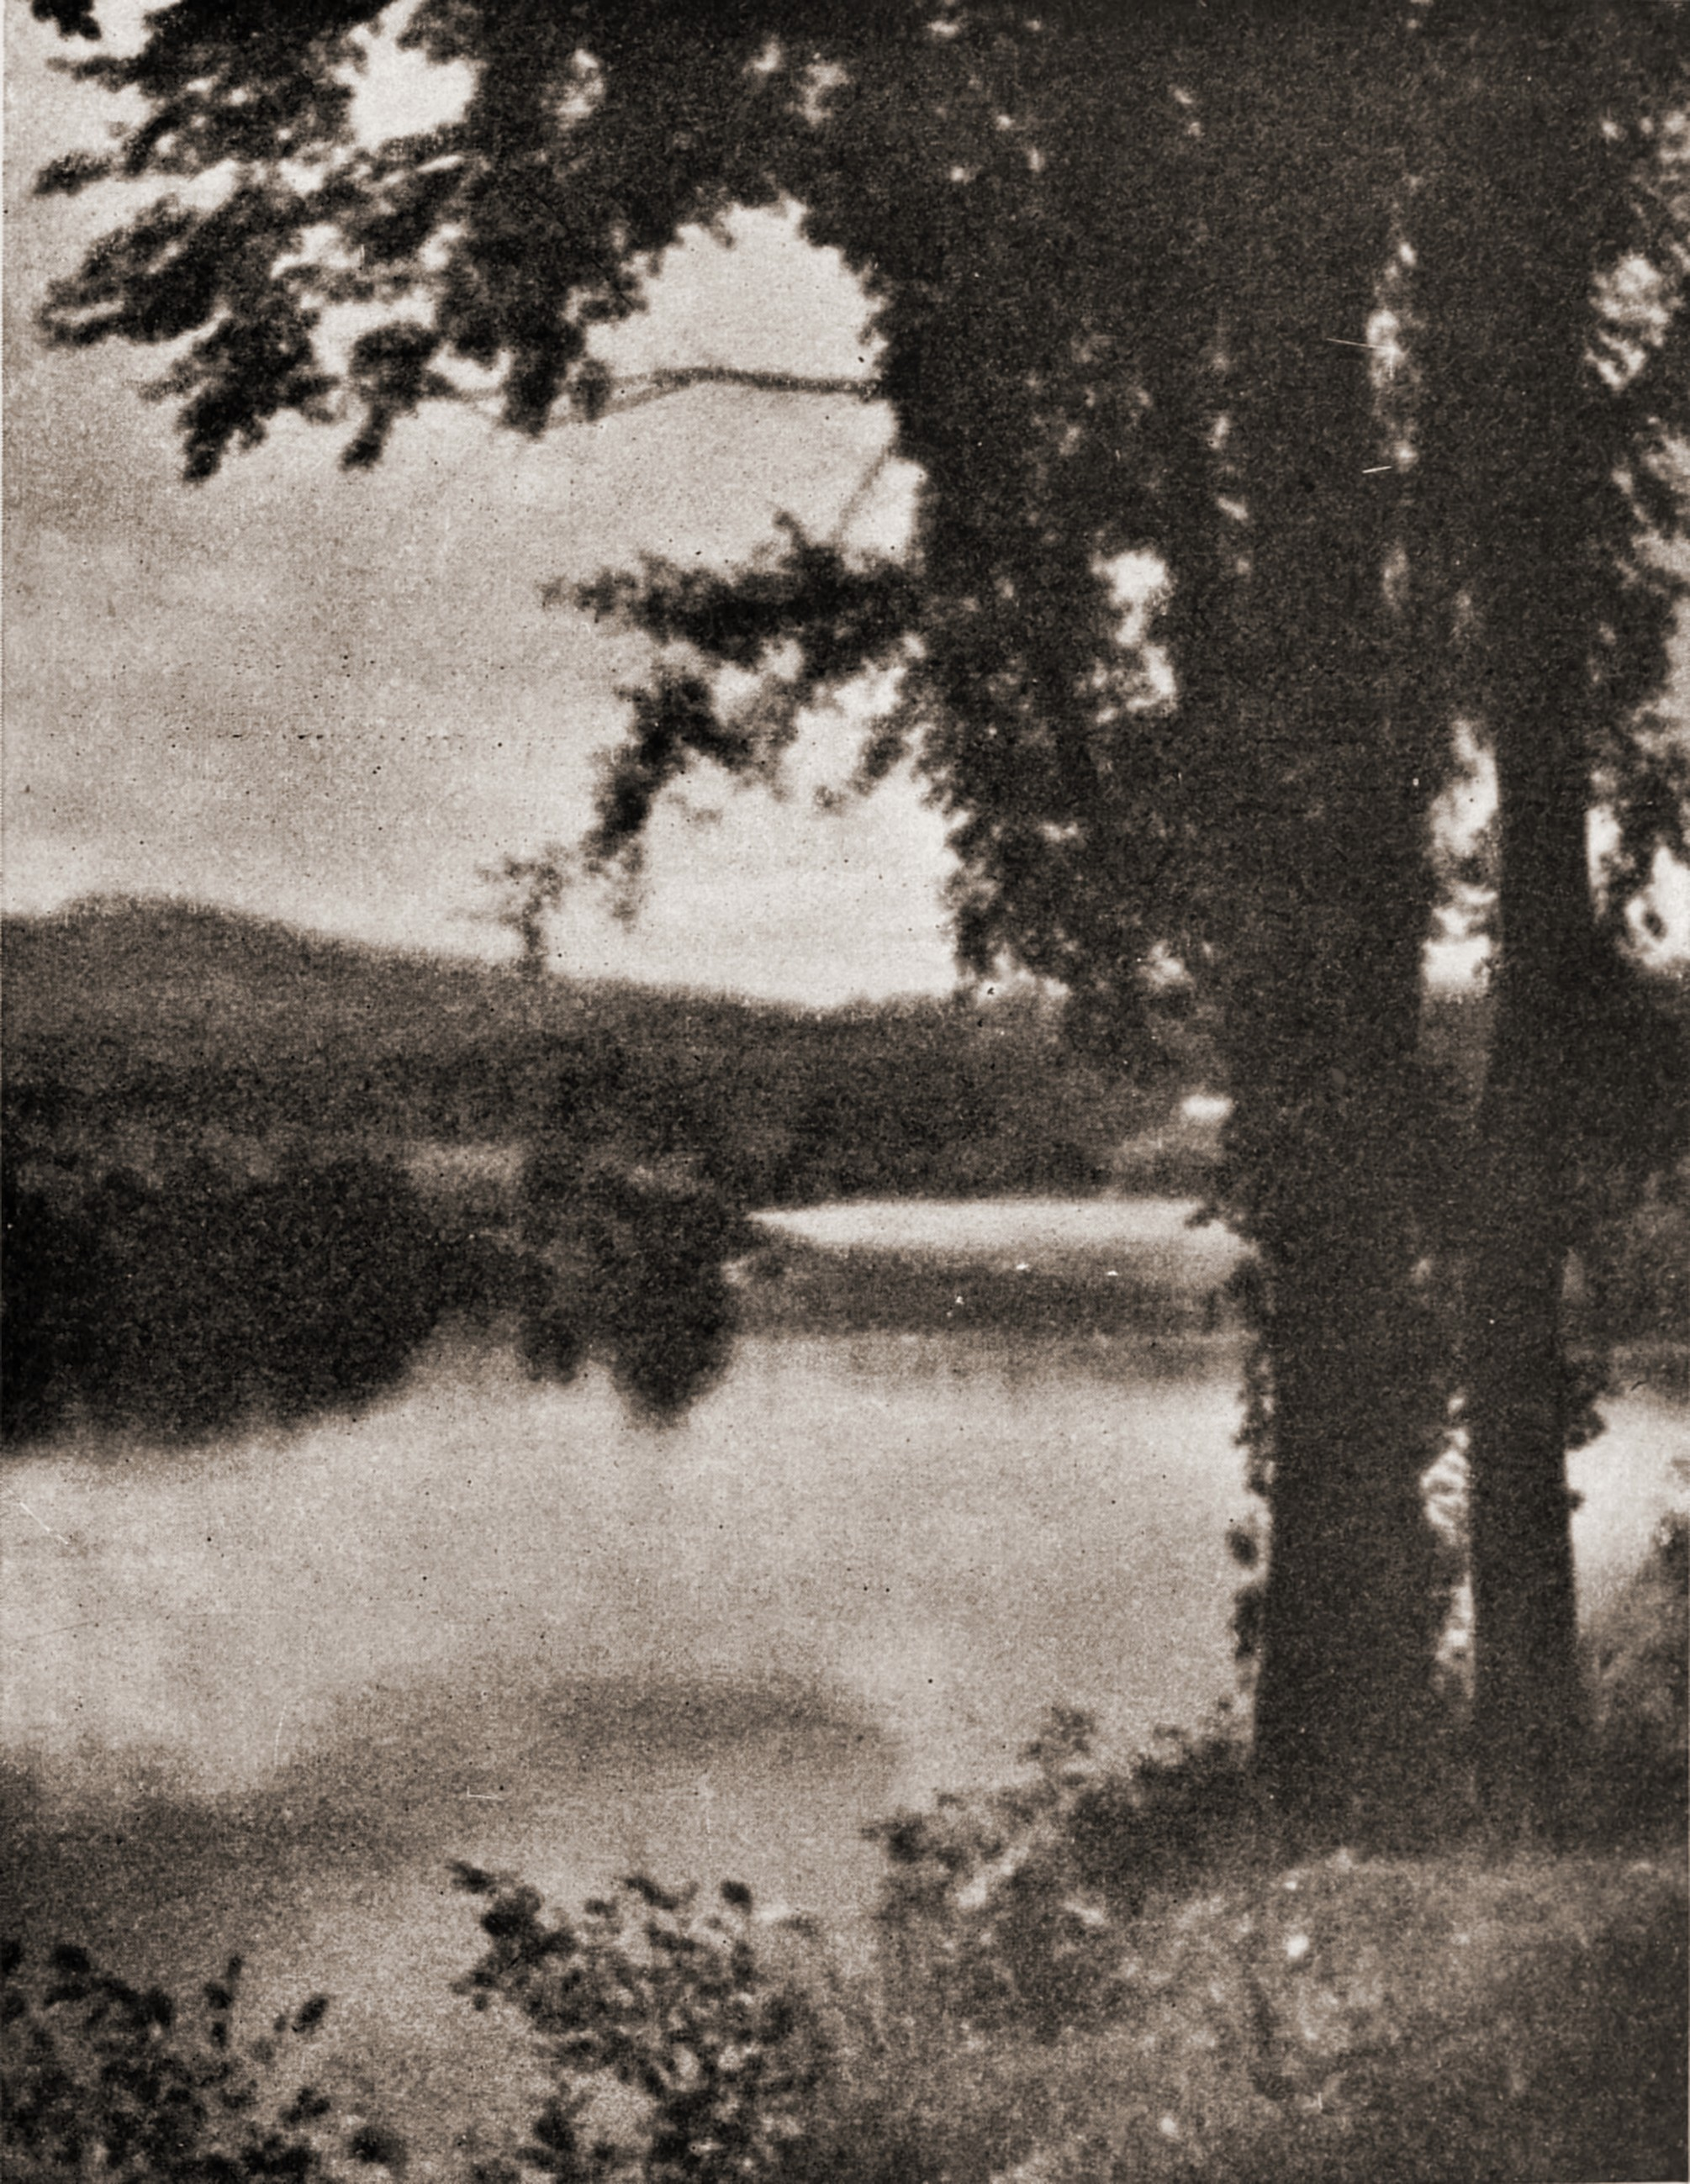 A bit of the Androscoggin by W. T. Starr about 1923